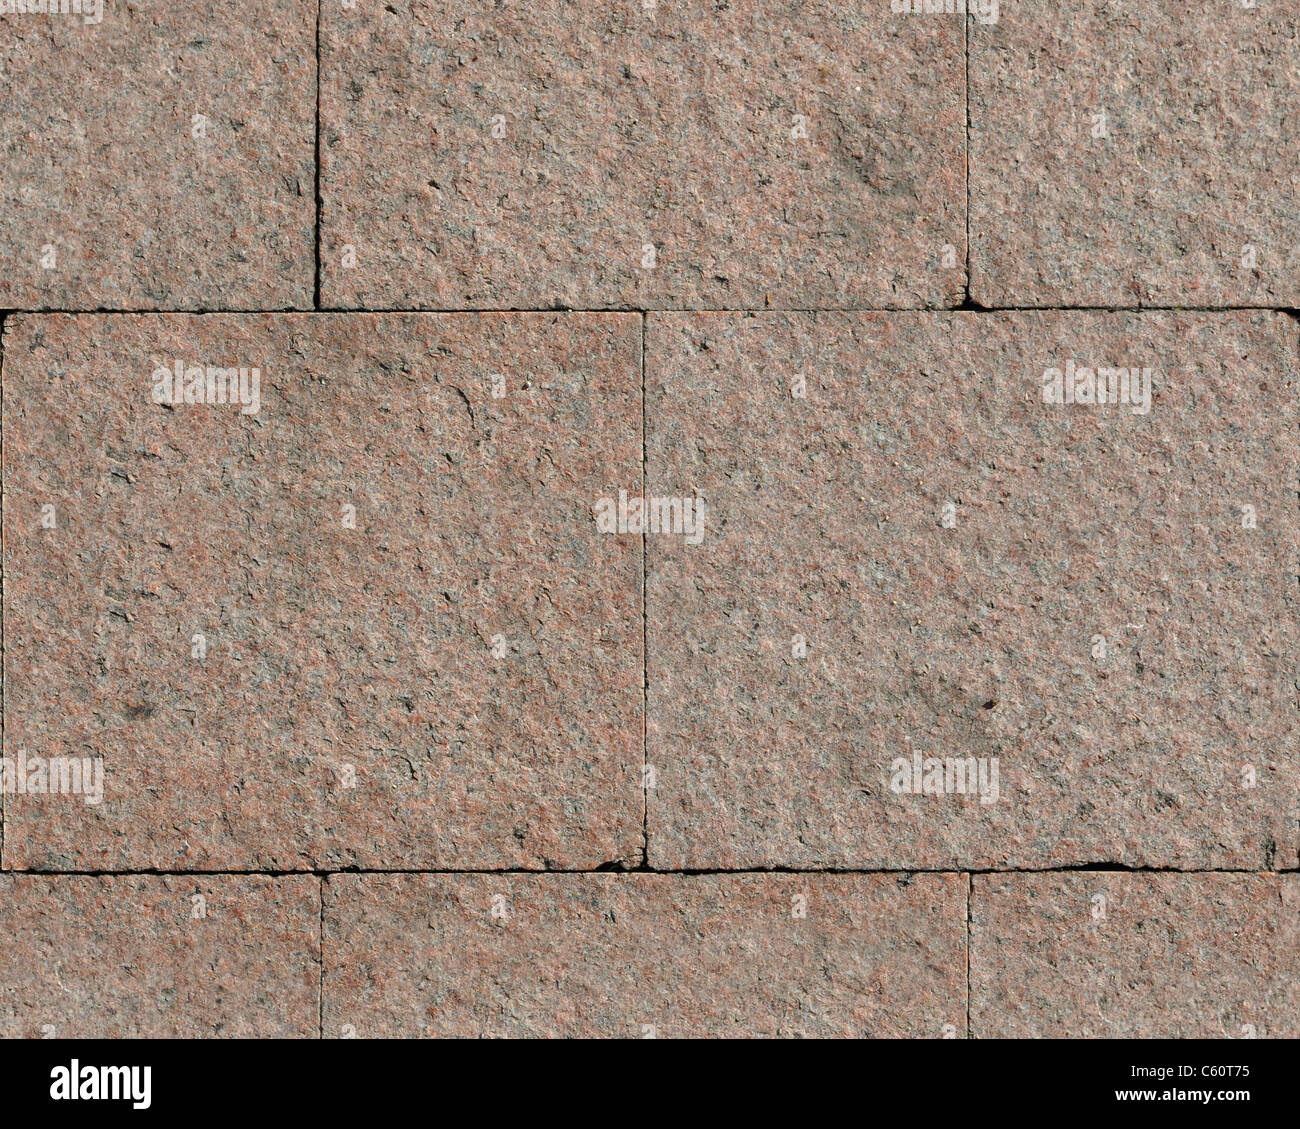 Granit stones texture which perfectly overlap - Stock Image